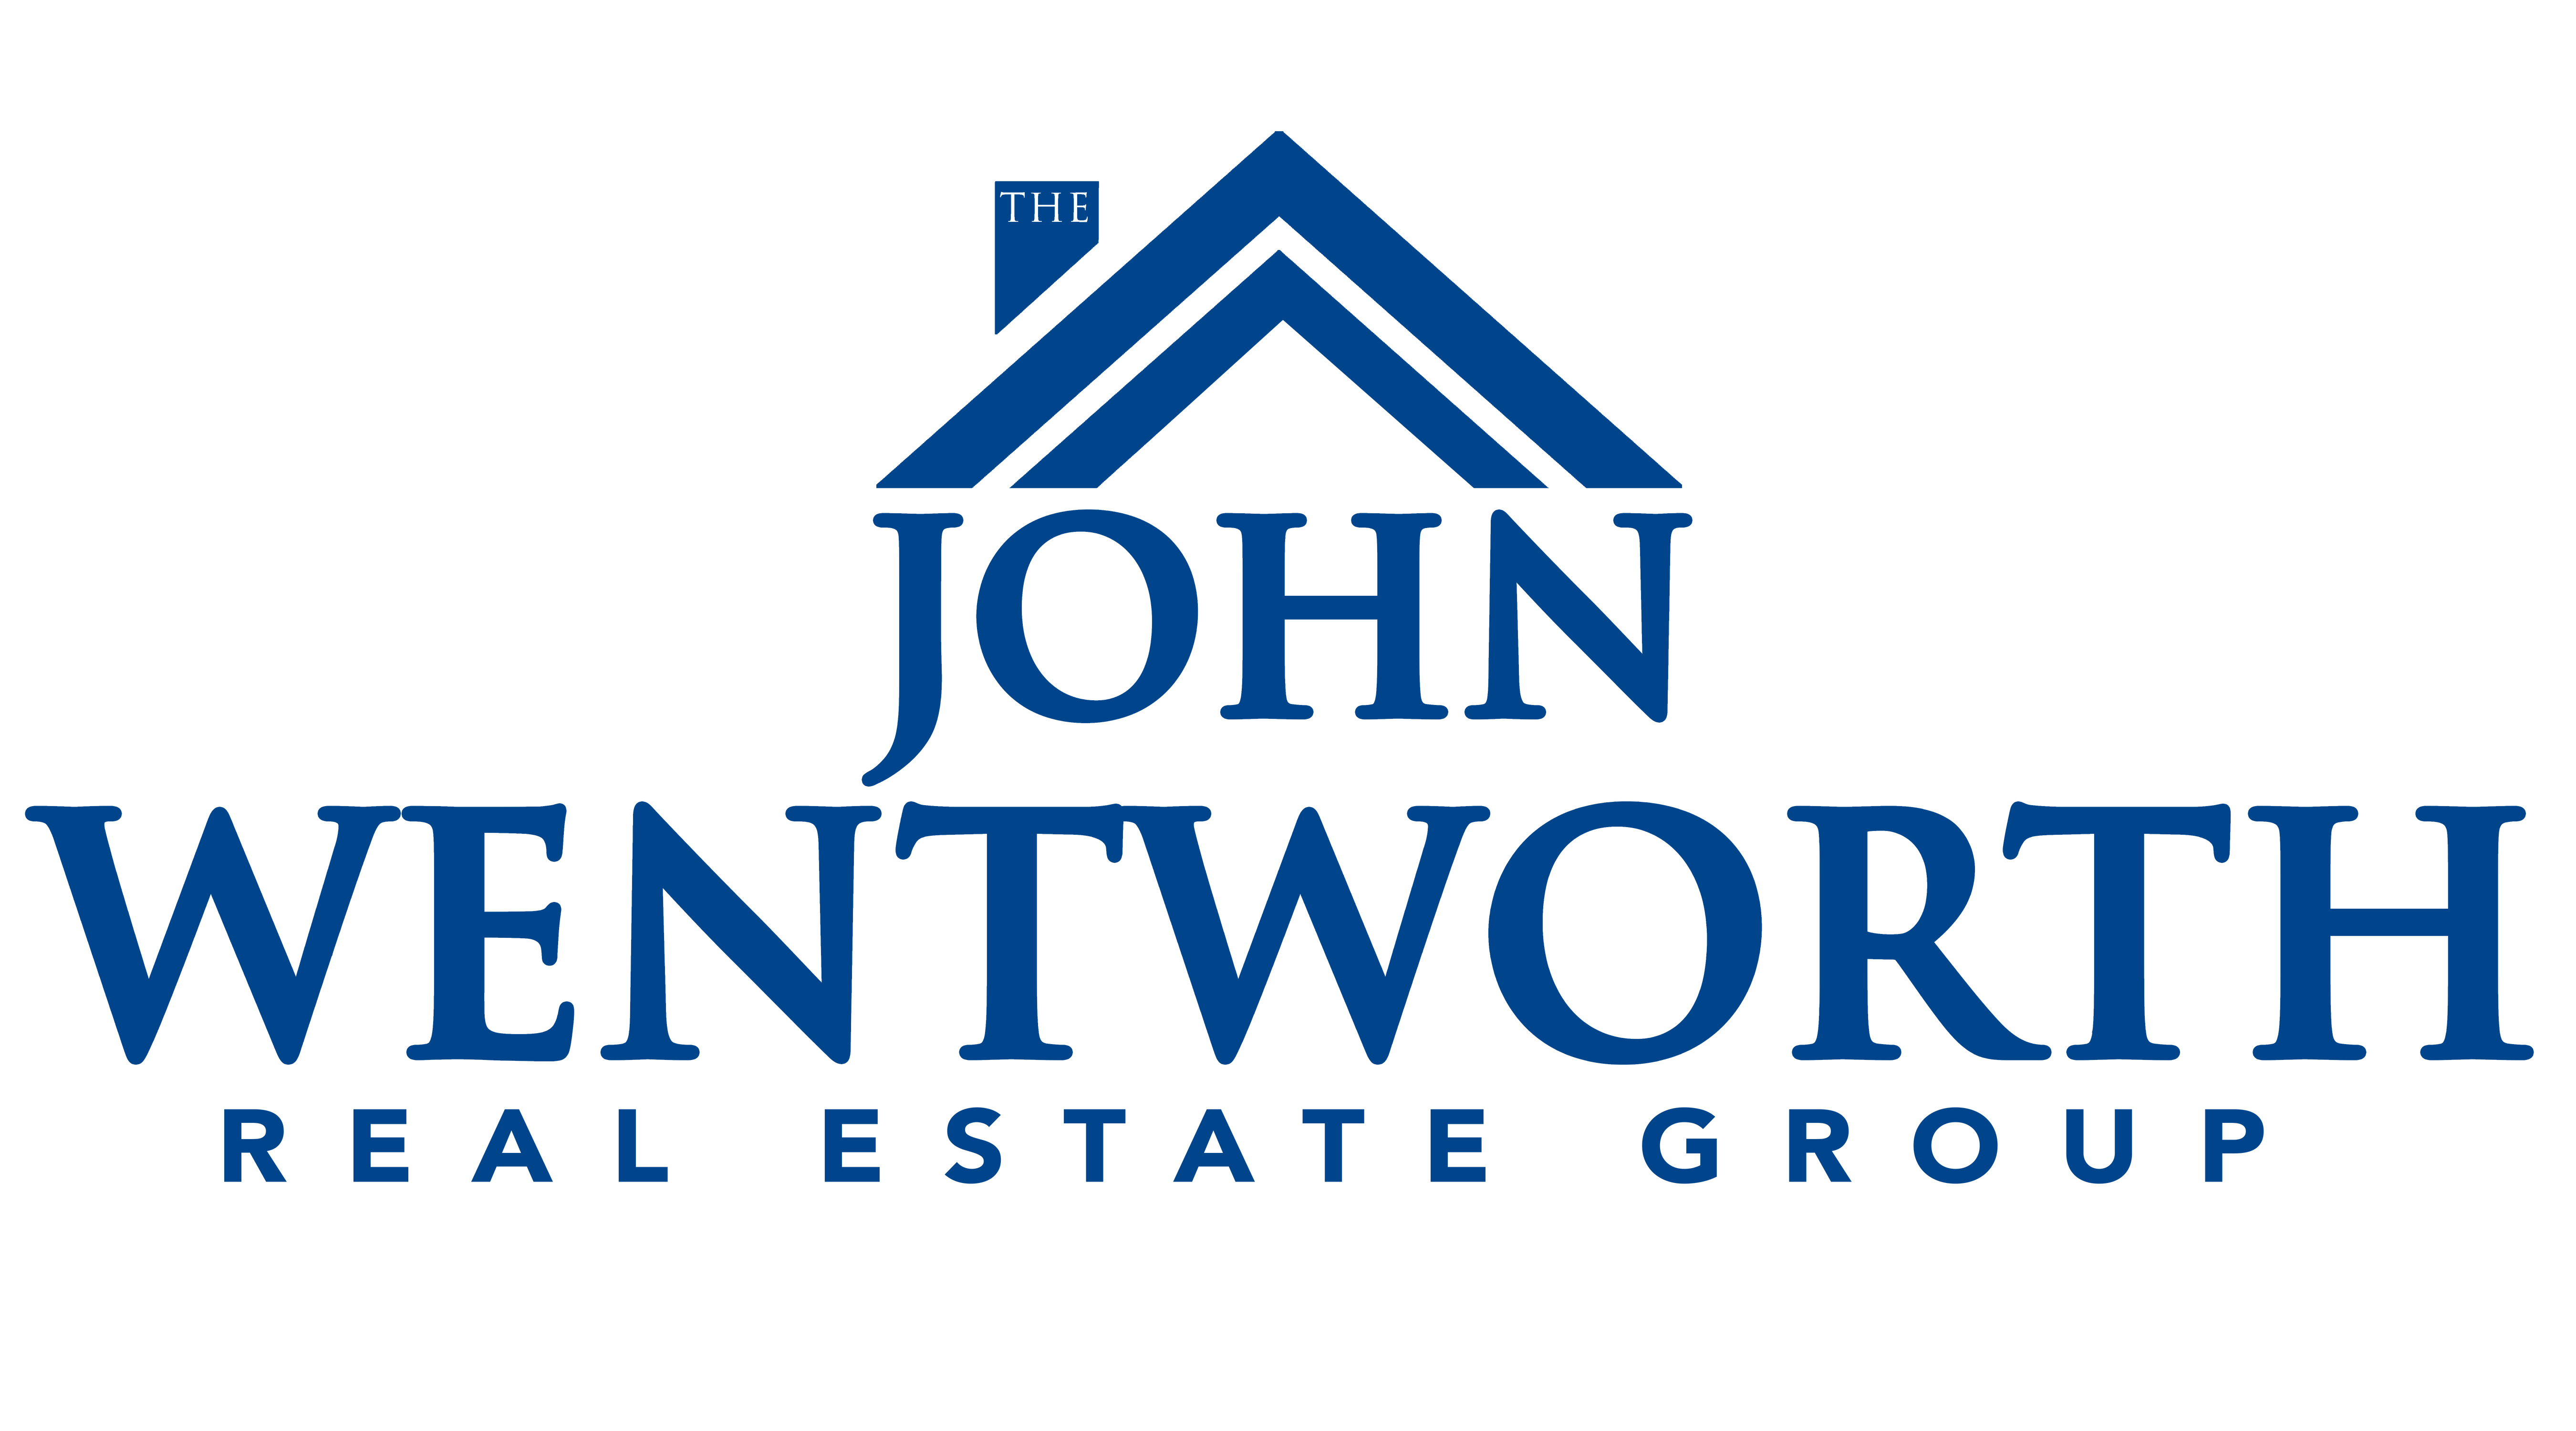 John Wentworth Real Estate Grp logo